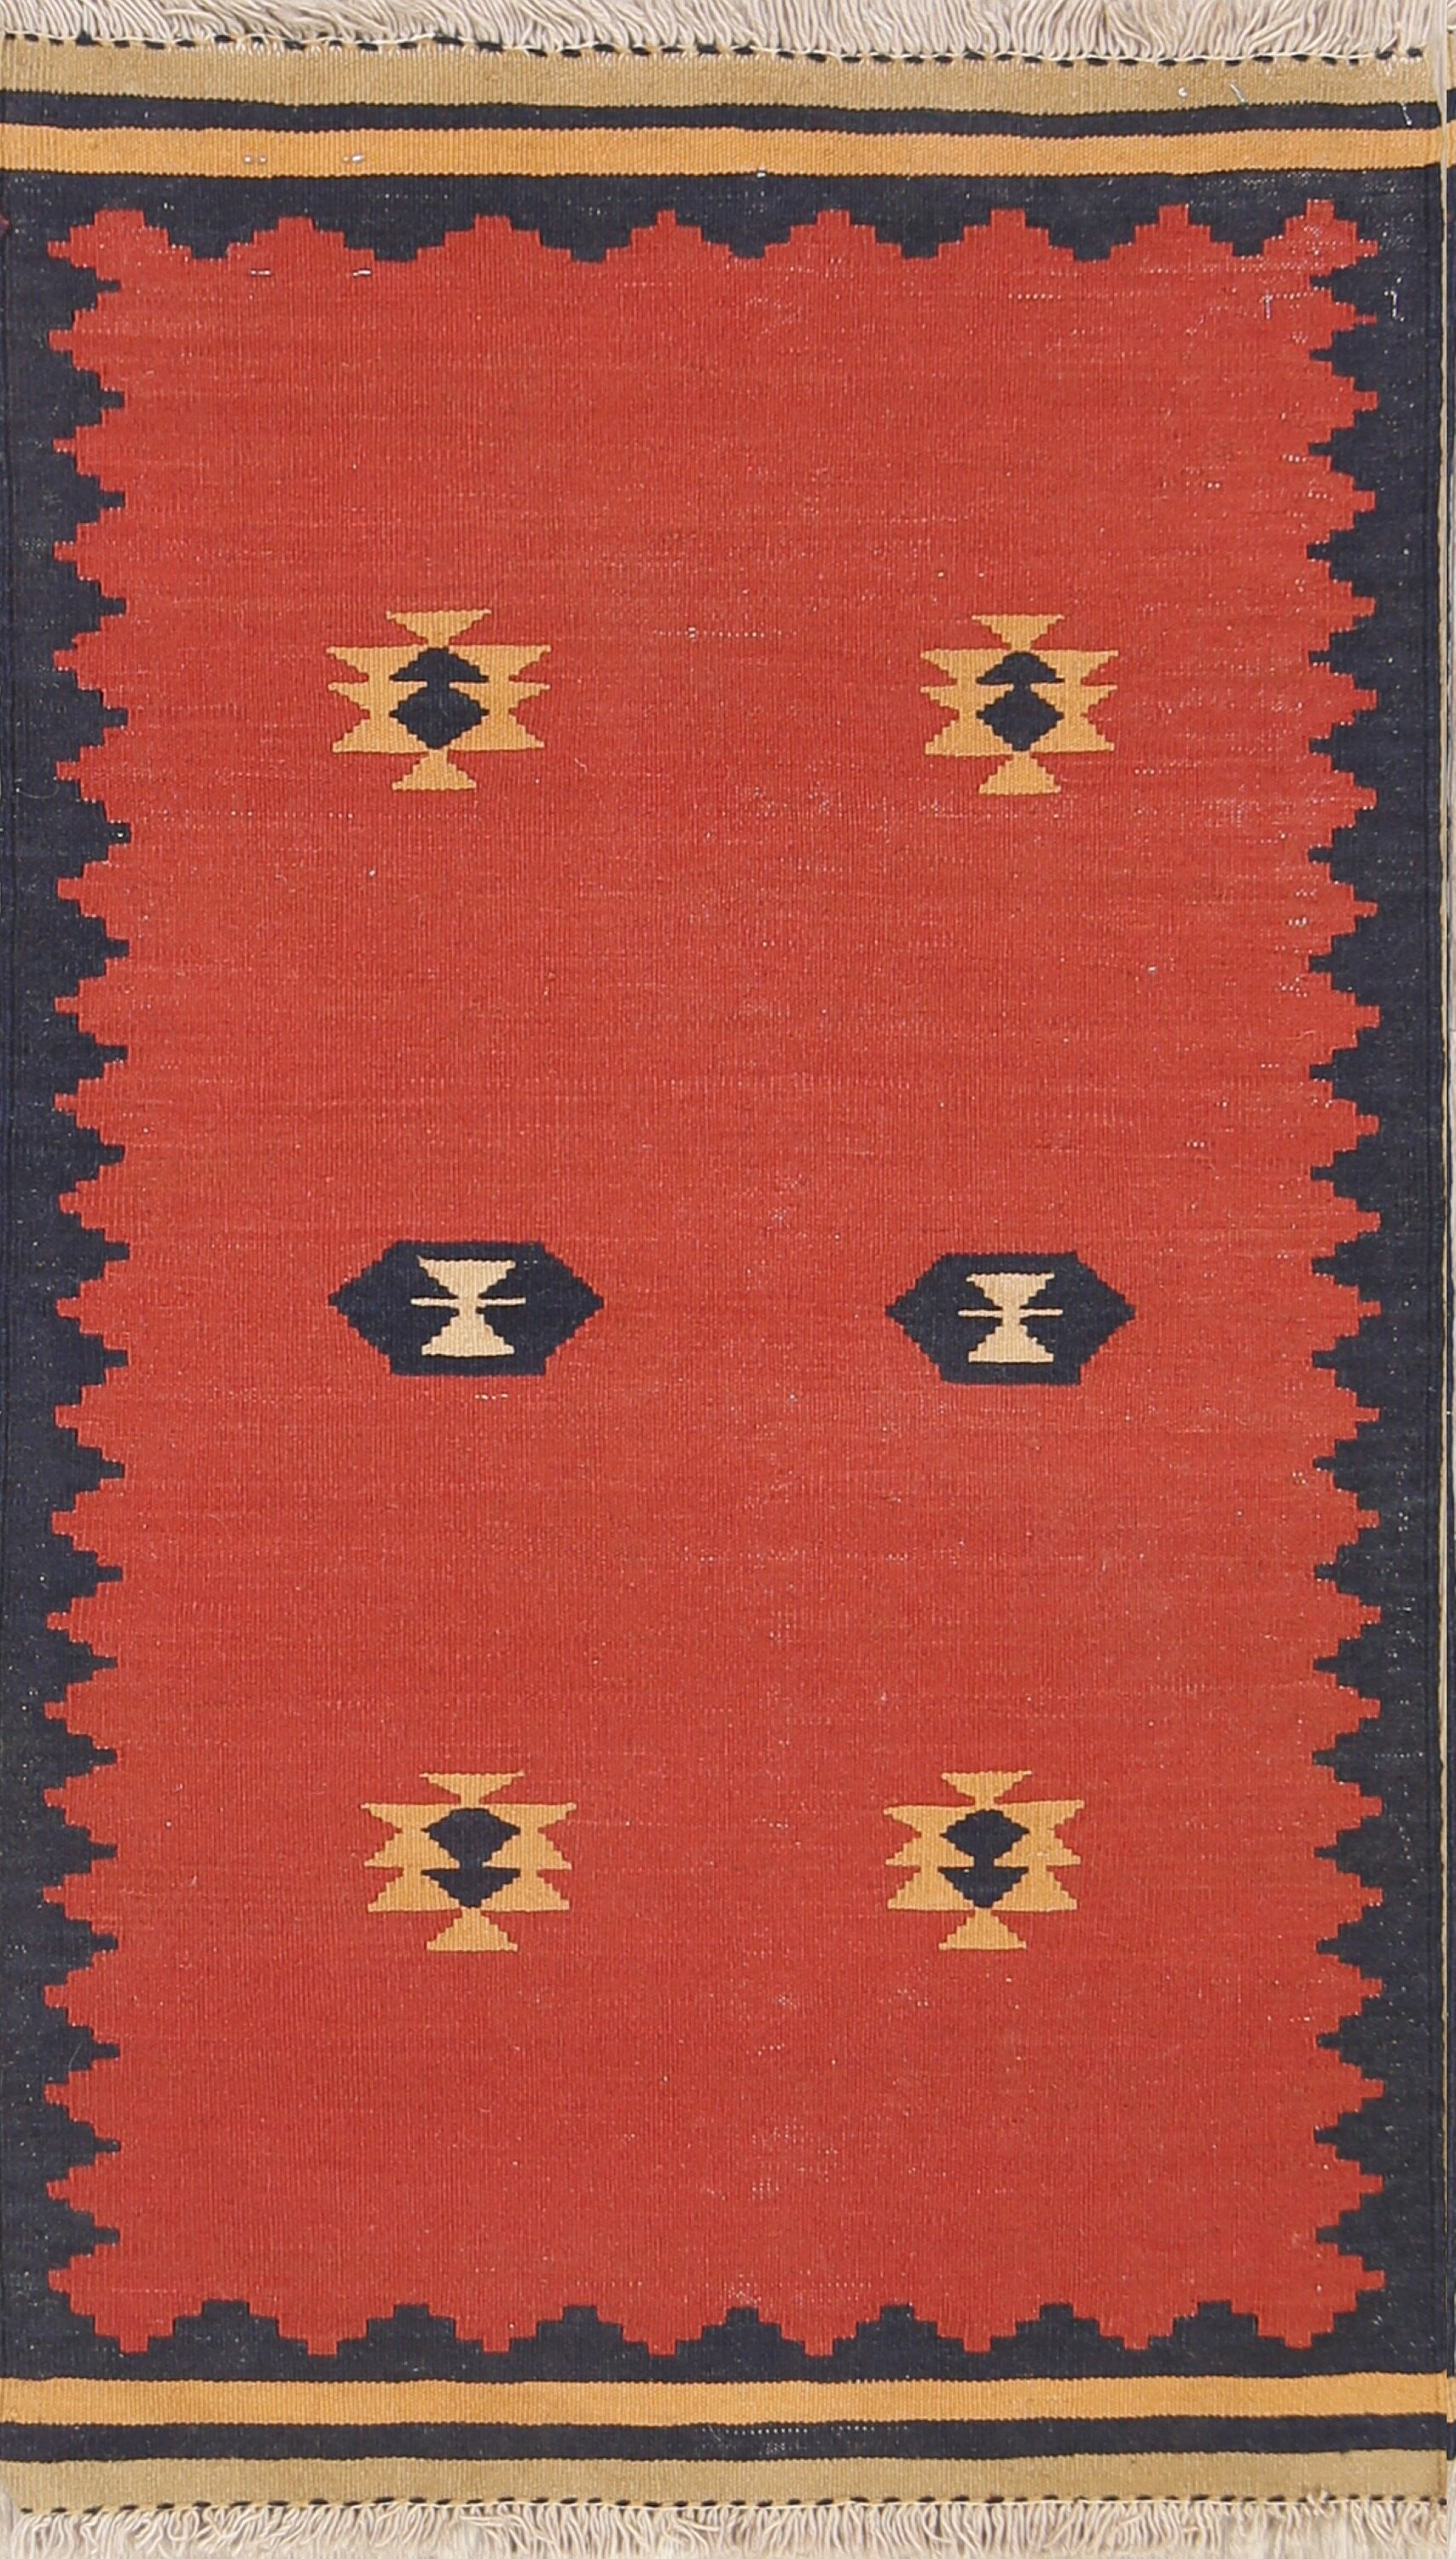 One-of-a-Kind Nomad Tribal Kilim Balouch Sumak Persian Hand-Knotted 2'4